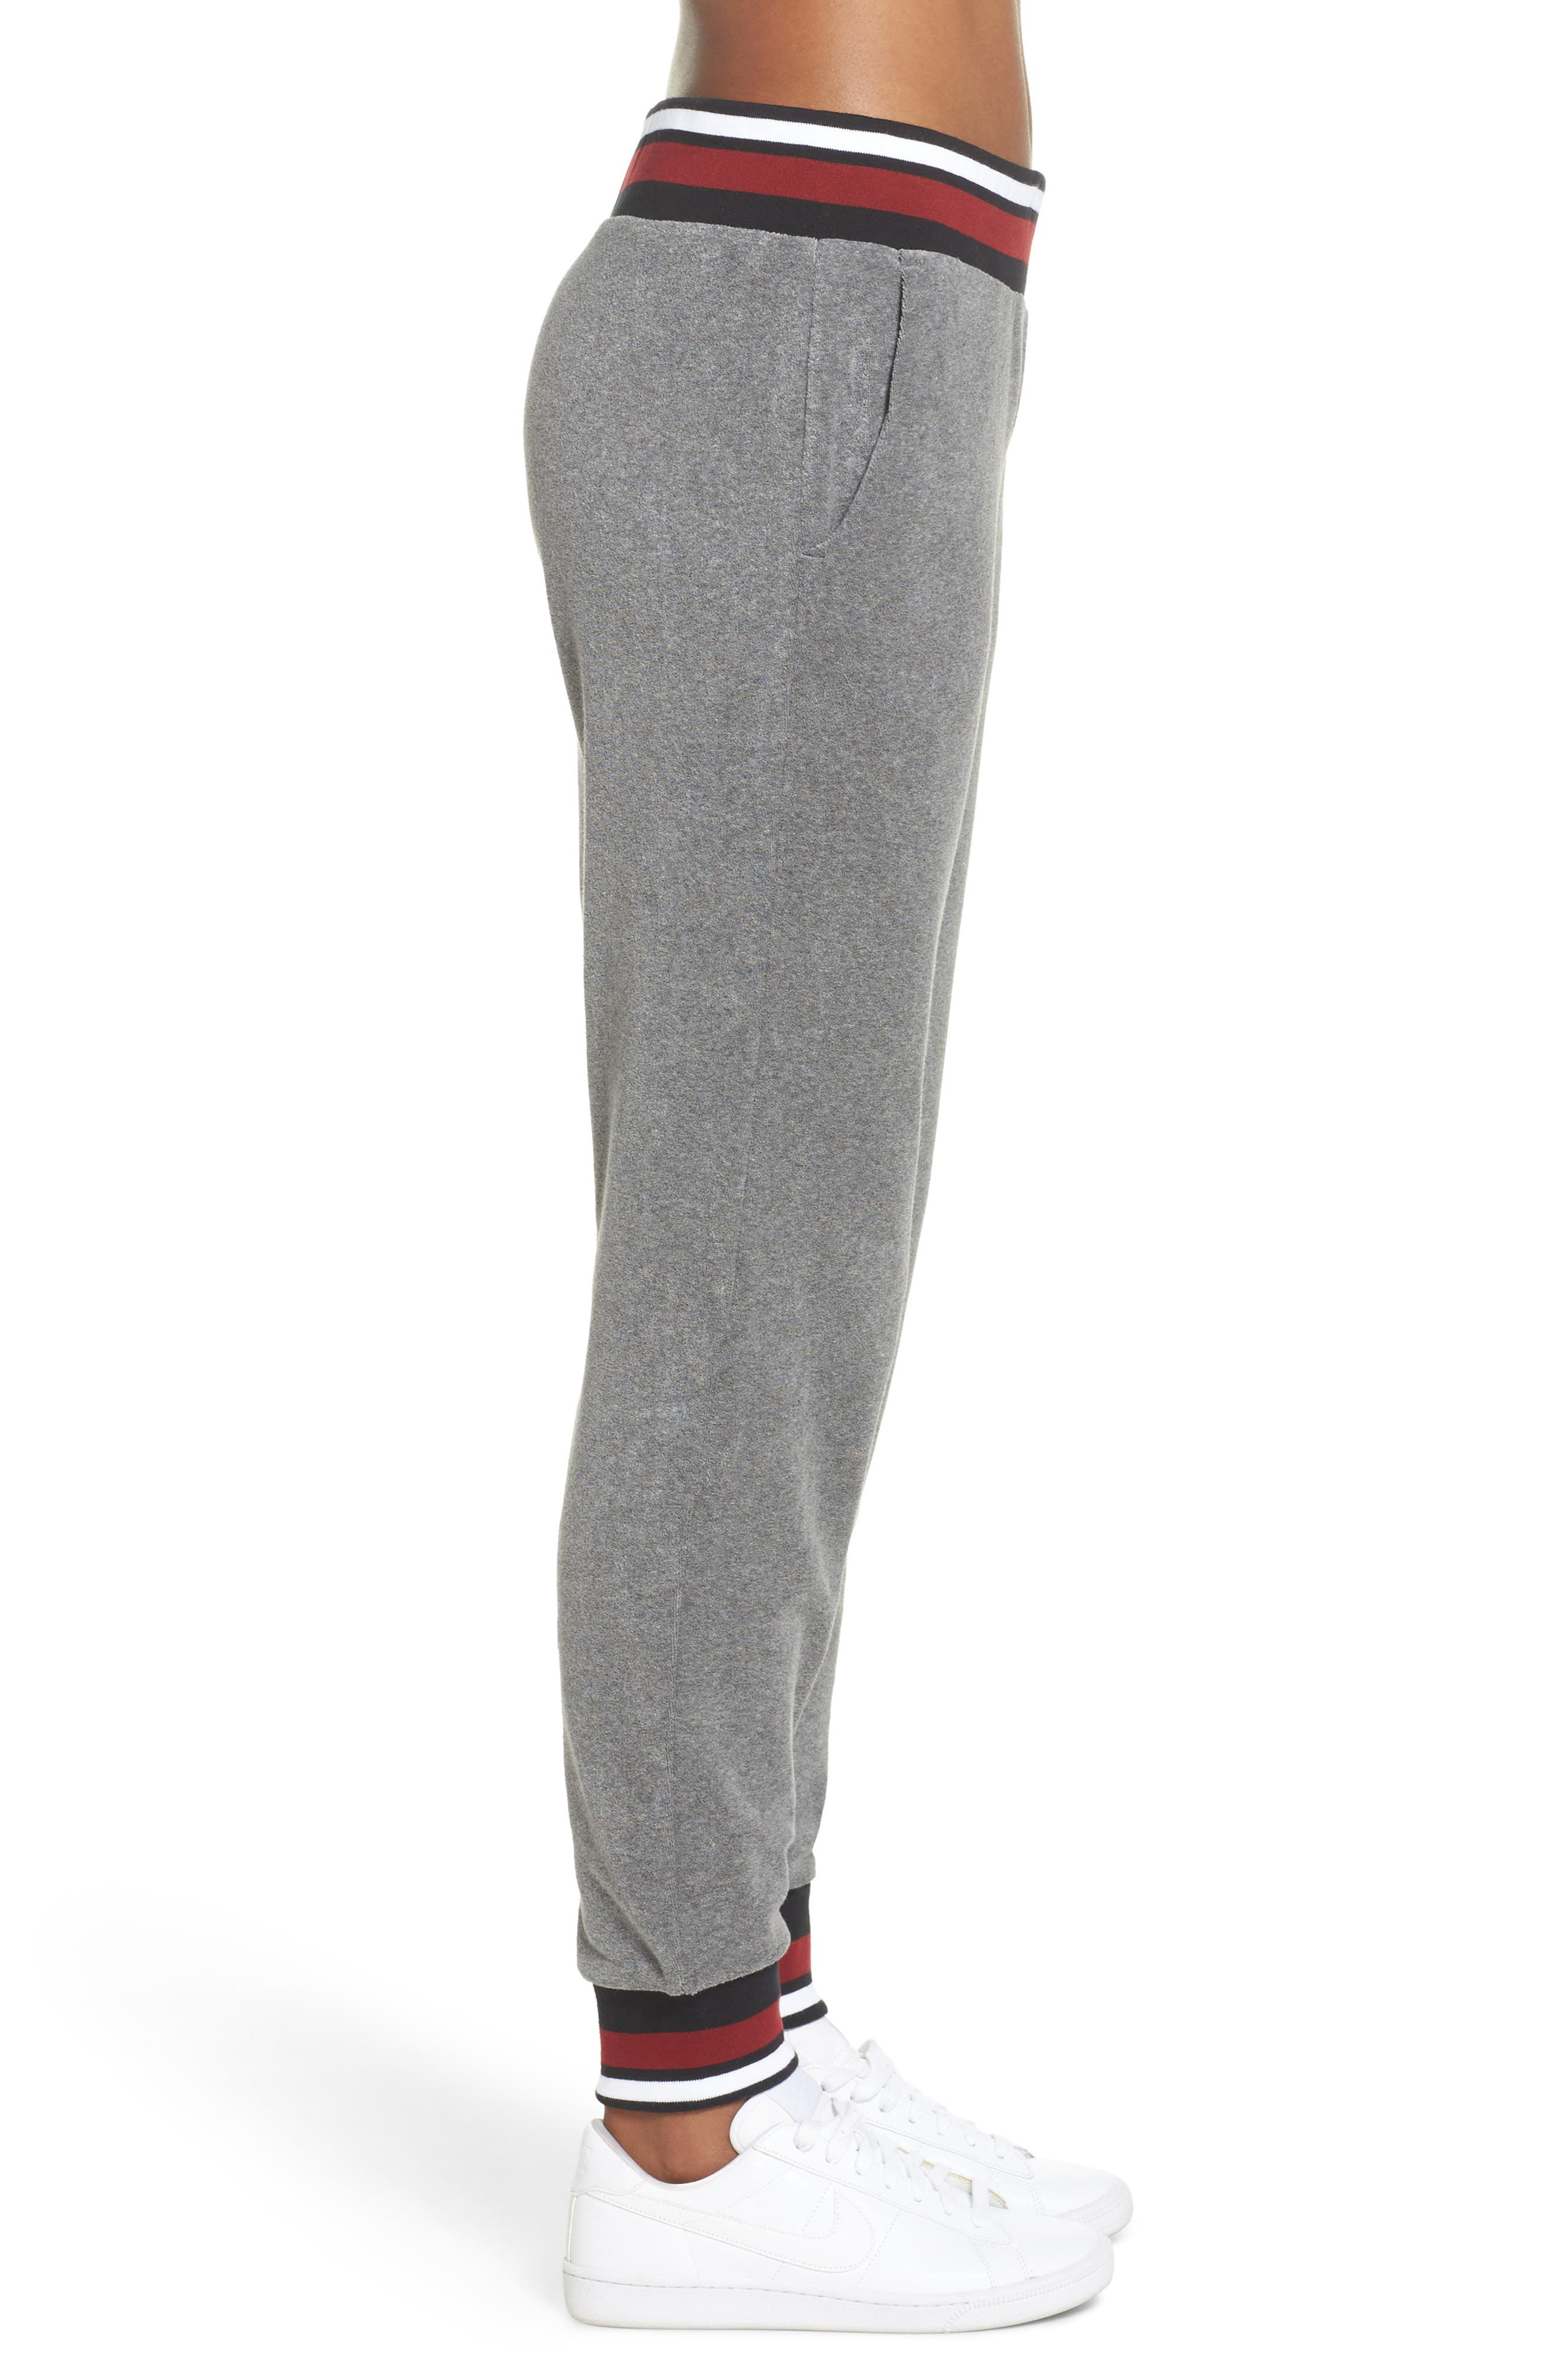 Sportswear French Terry Pants,                             Alternate thumbnail 3, color,                             Carbon Heather/ Team Red